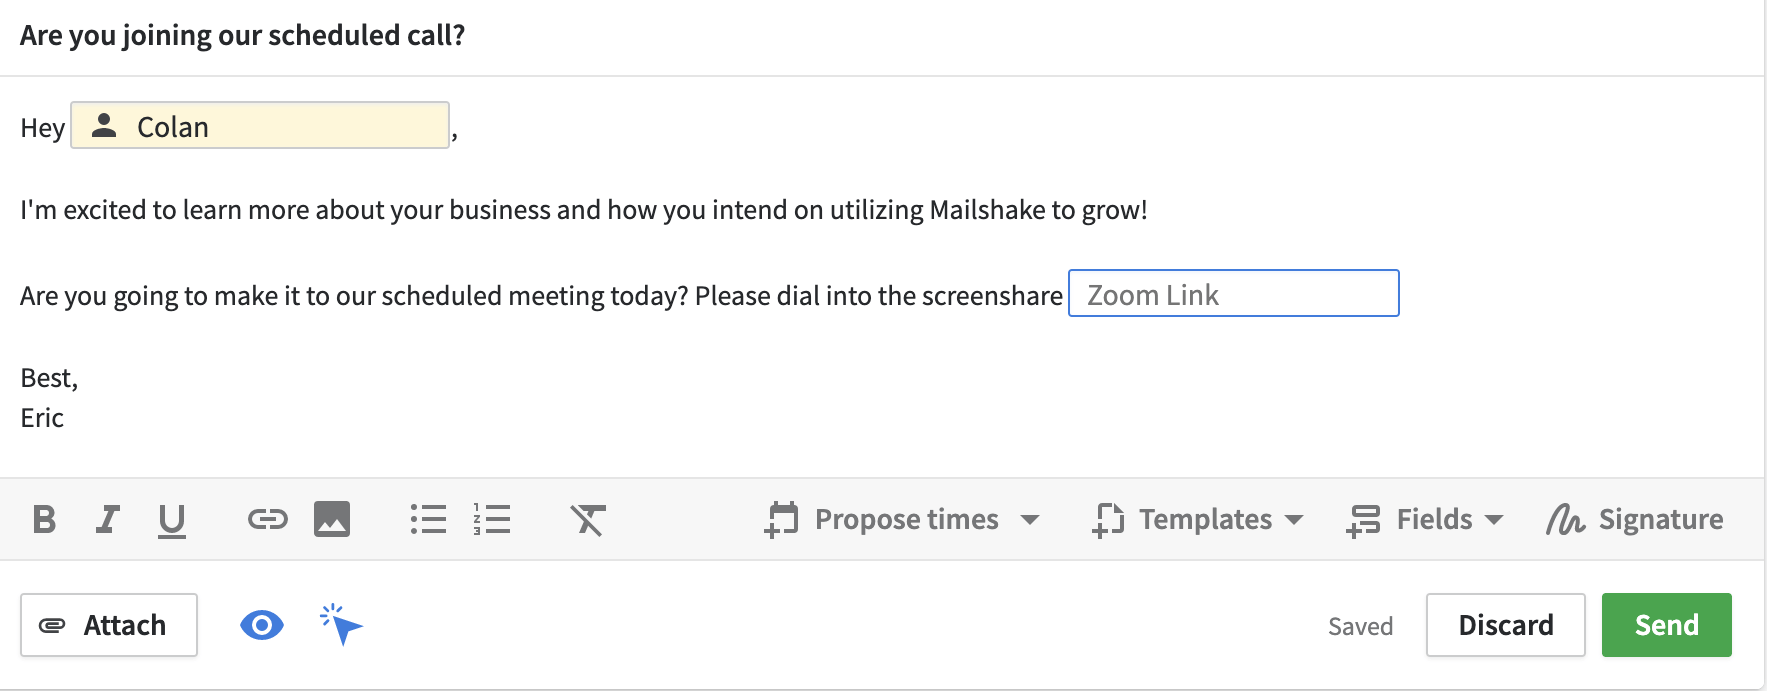 mailshake are you joining our call